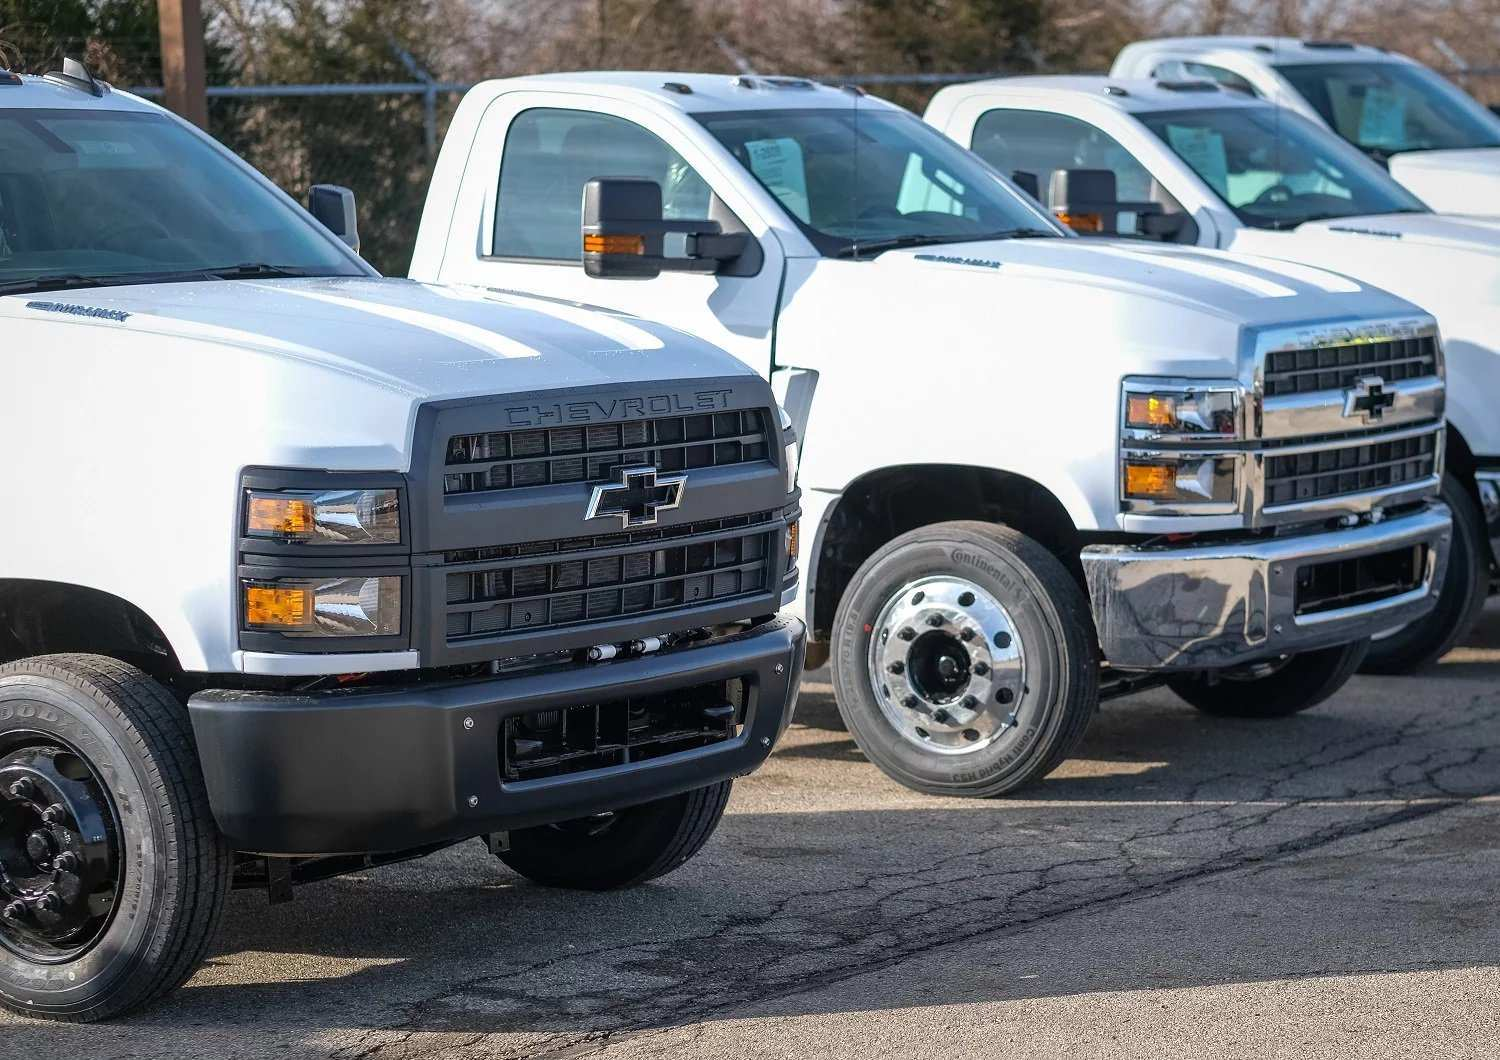 66 Gallery of 2019 Gmc Hd 4500 Engine for 2019 Gmc Hd 4500